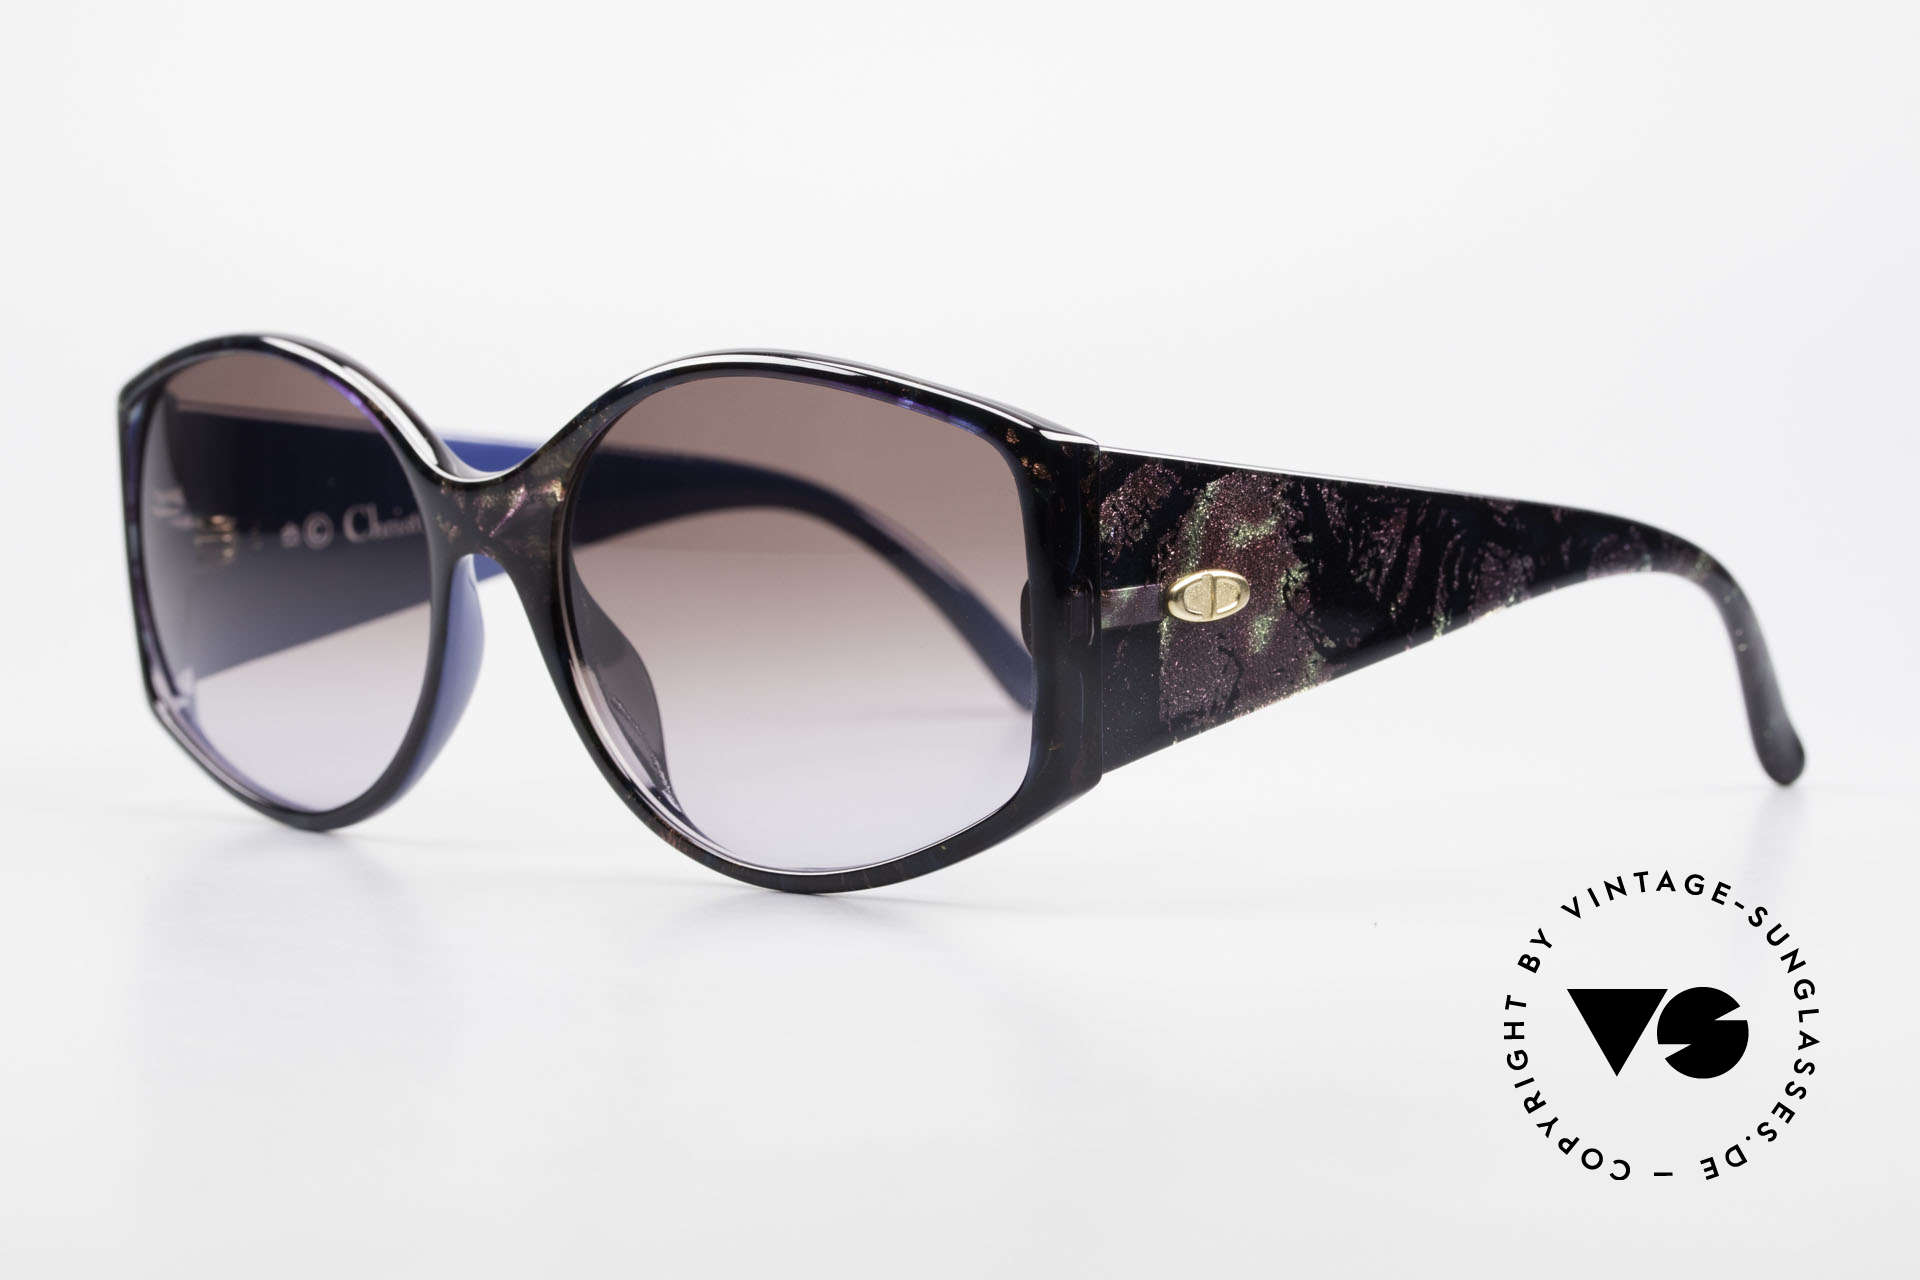 Christian Dior 2435 Ladies Designer Sunglasses 80's, 'Primadonna' or 'Diva' sunglasses - true vintage!, Made for Women